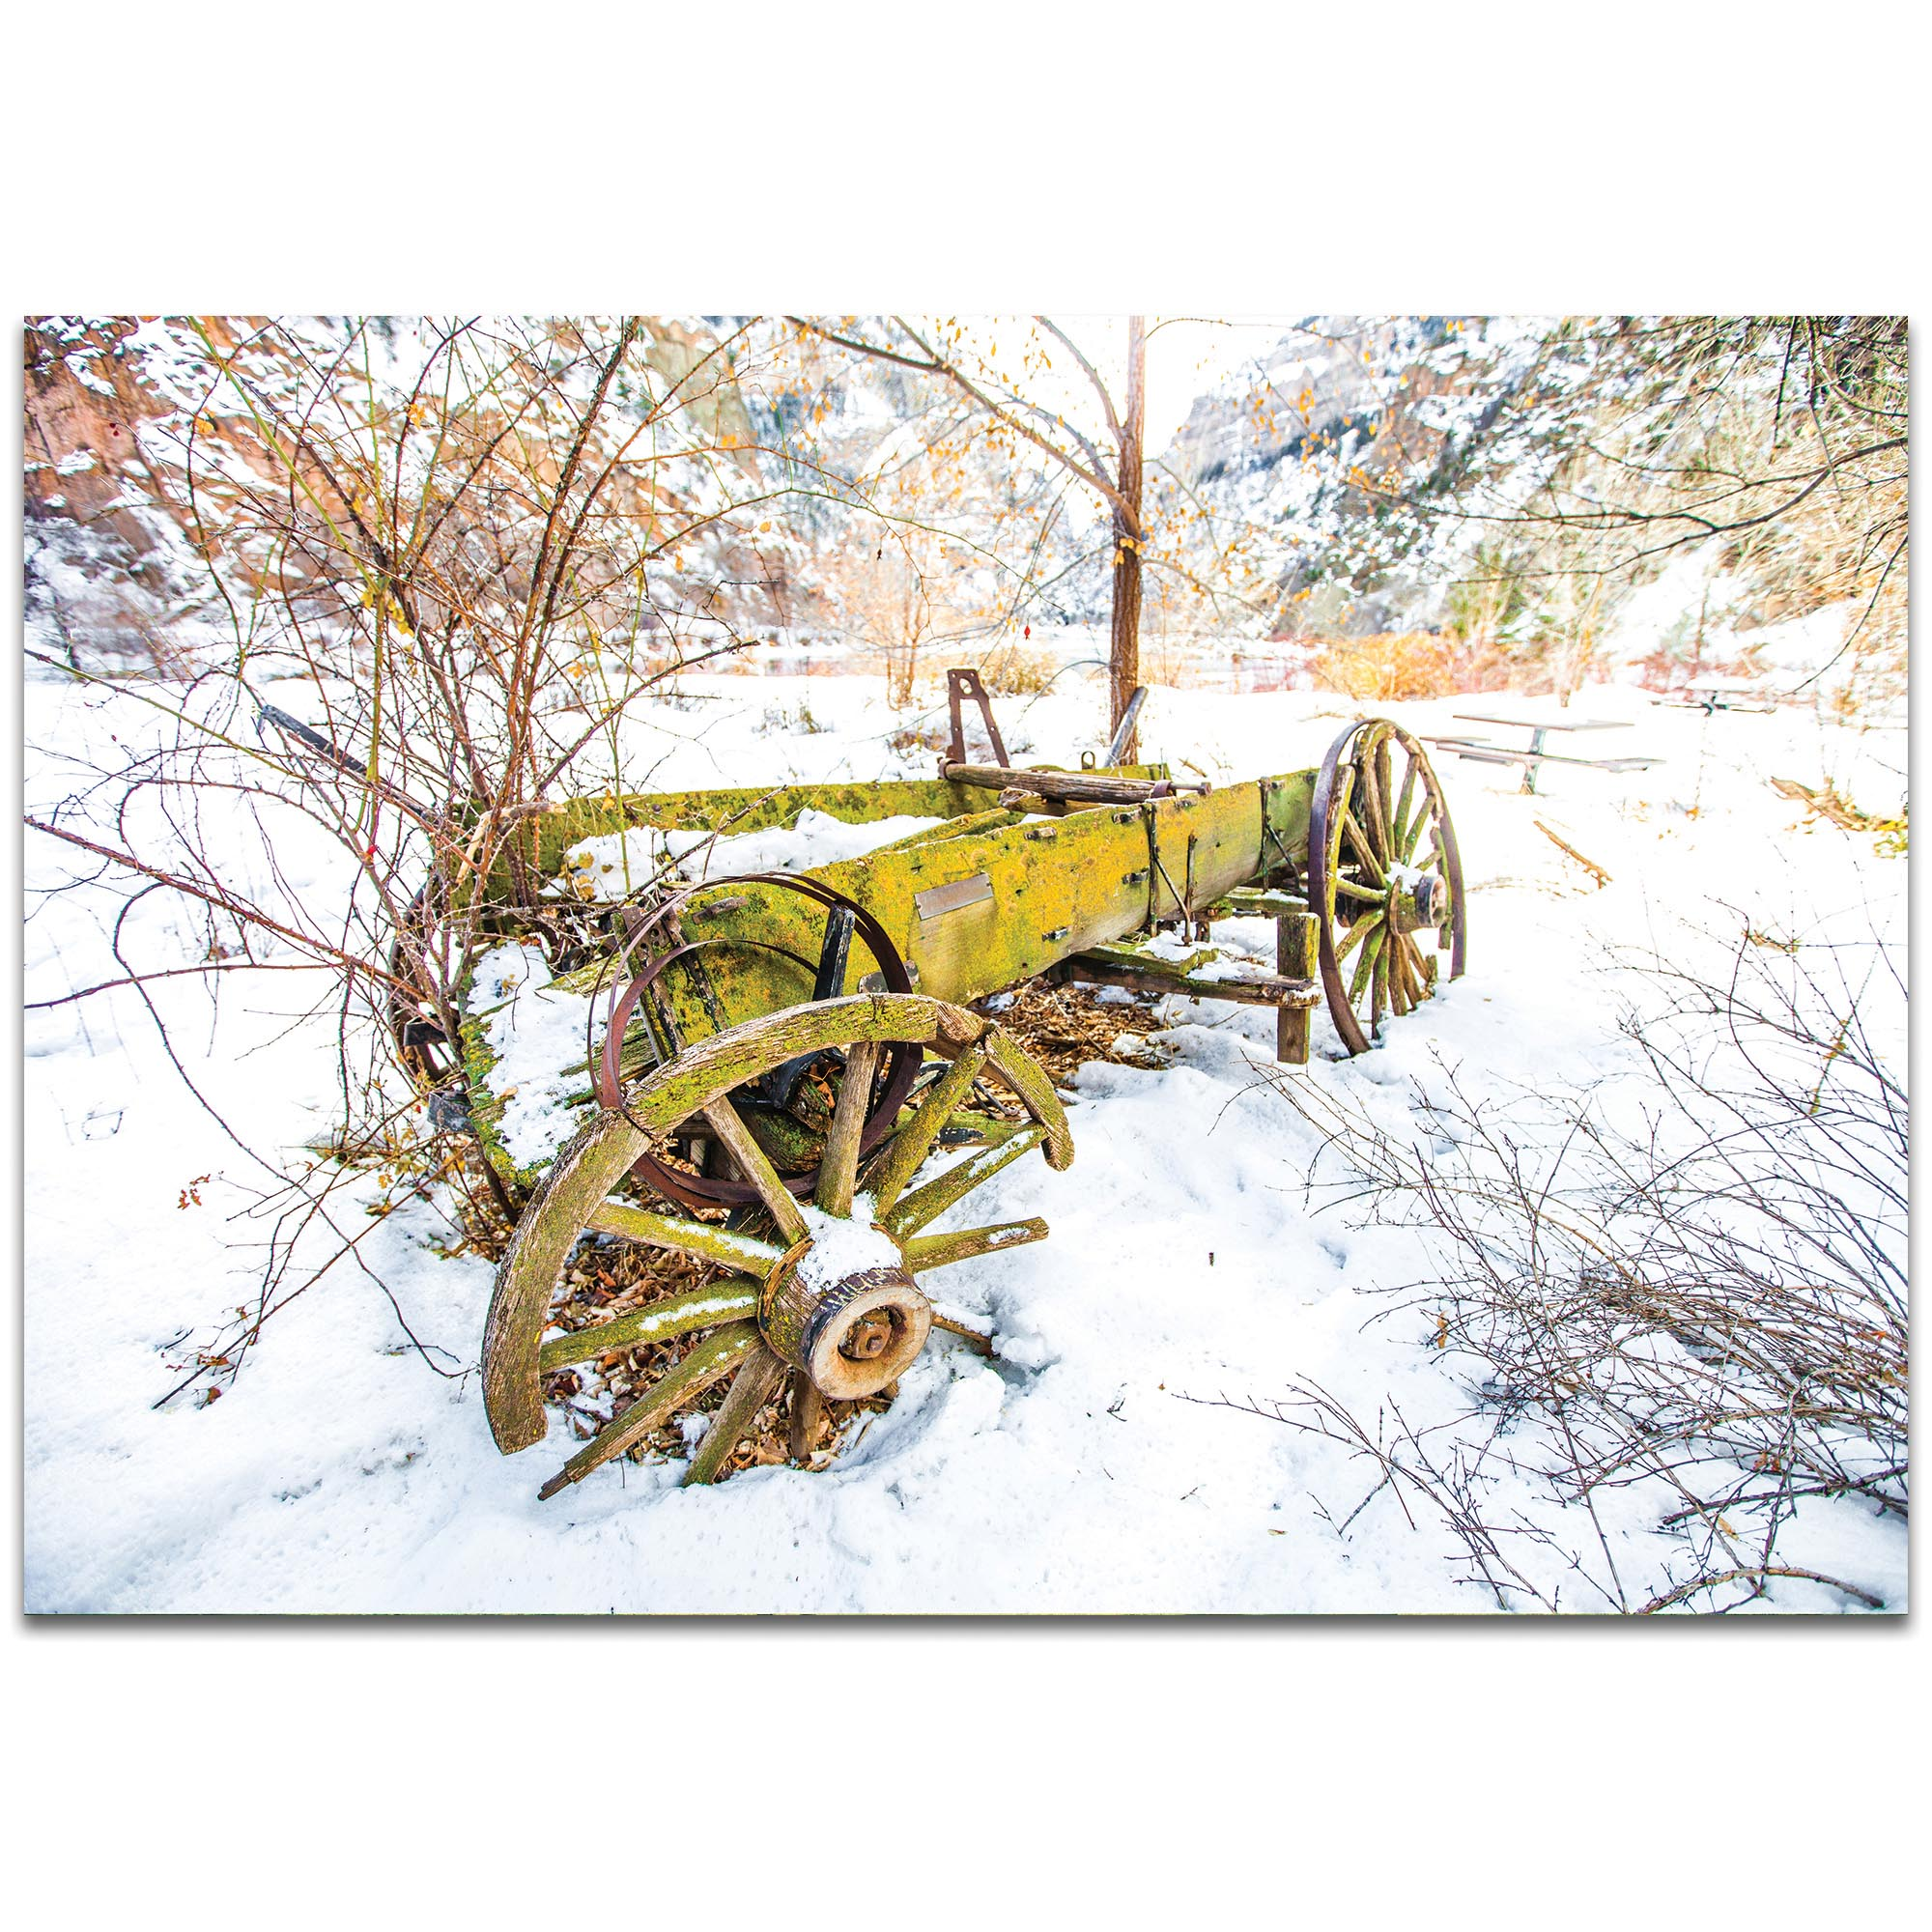 Western Wall Art 'Wagon Ruins' - Farm Landscape Decor on Metal or Plexiglass